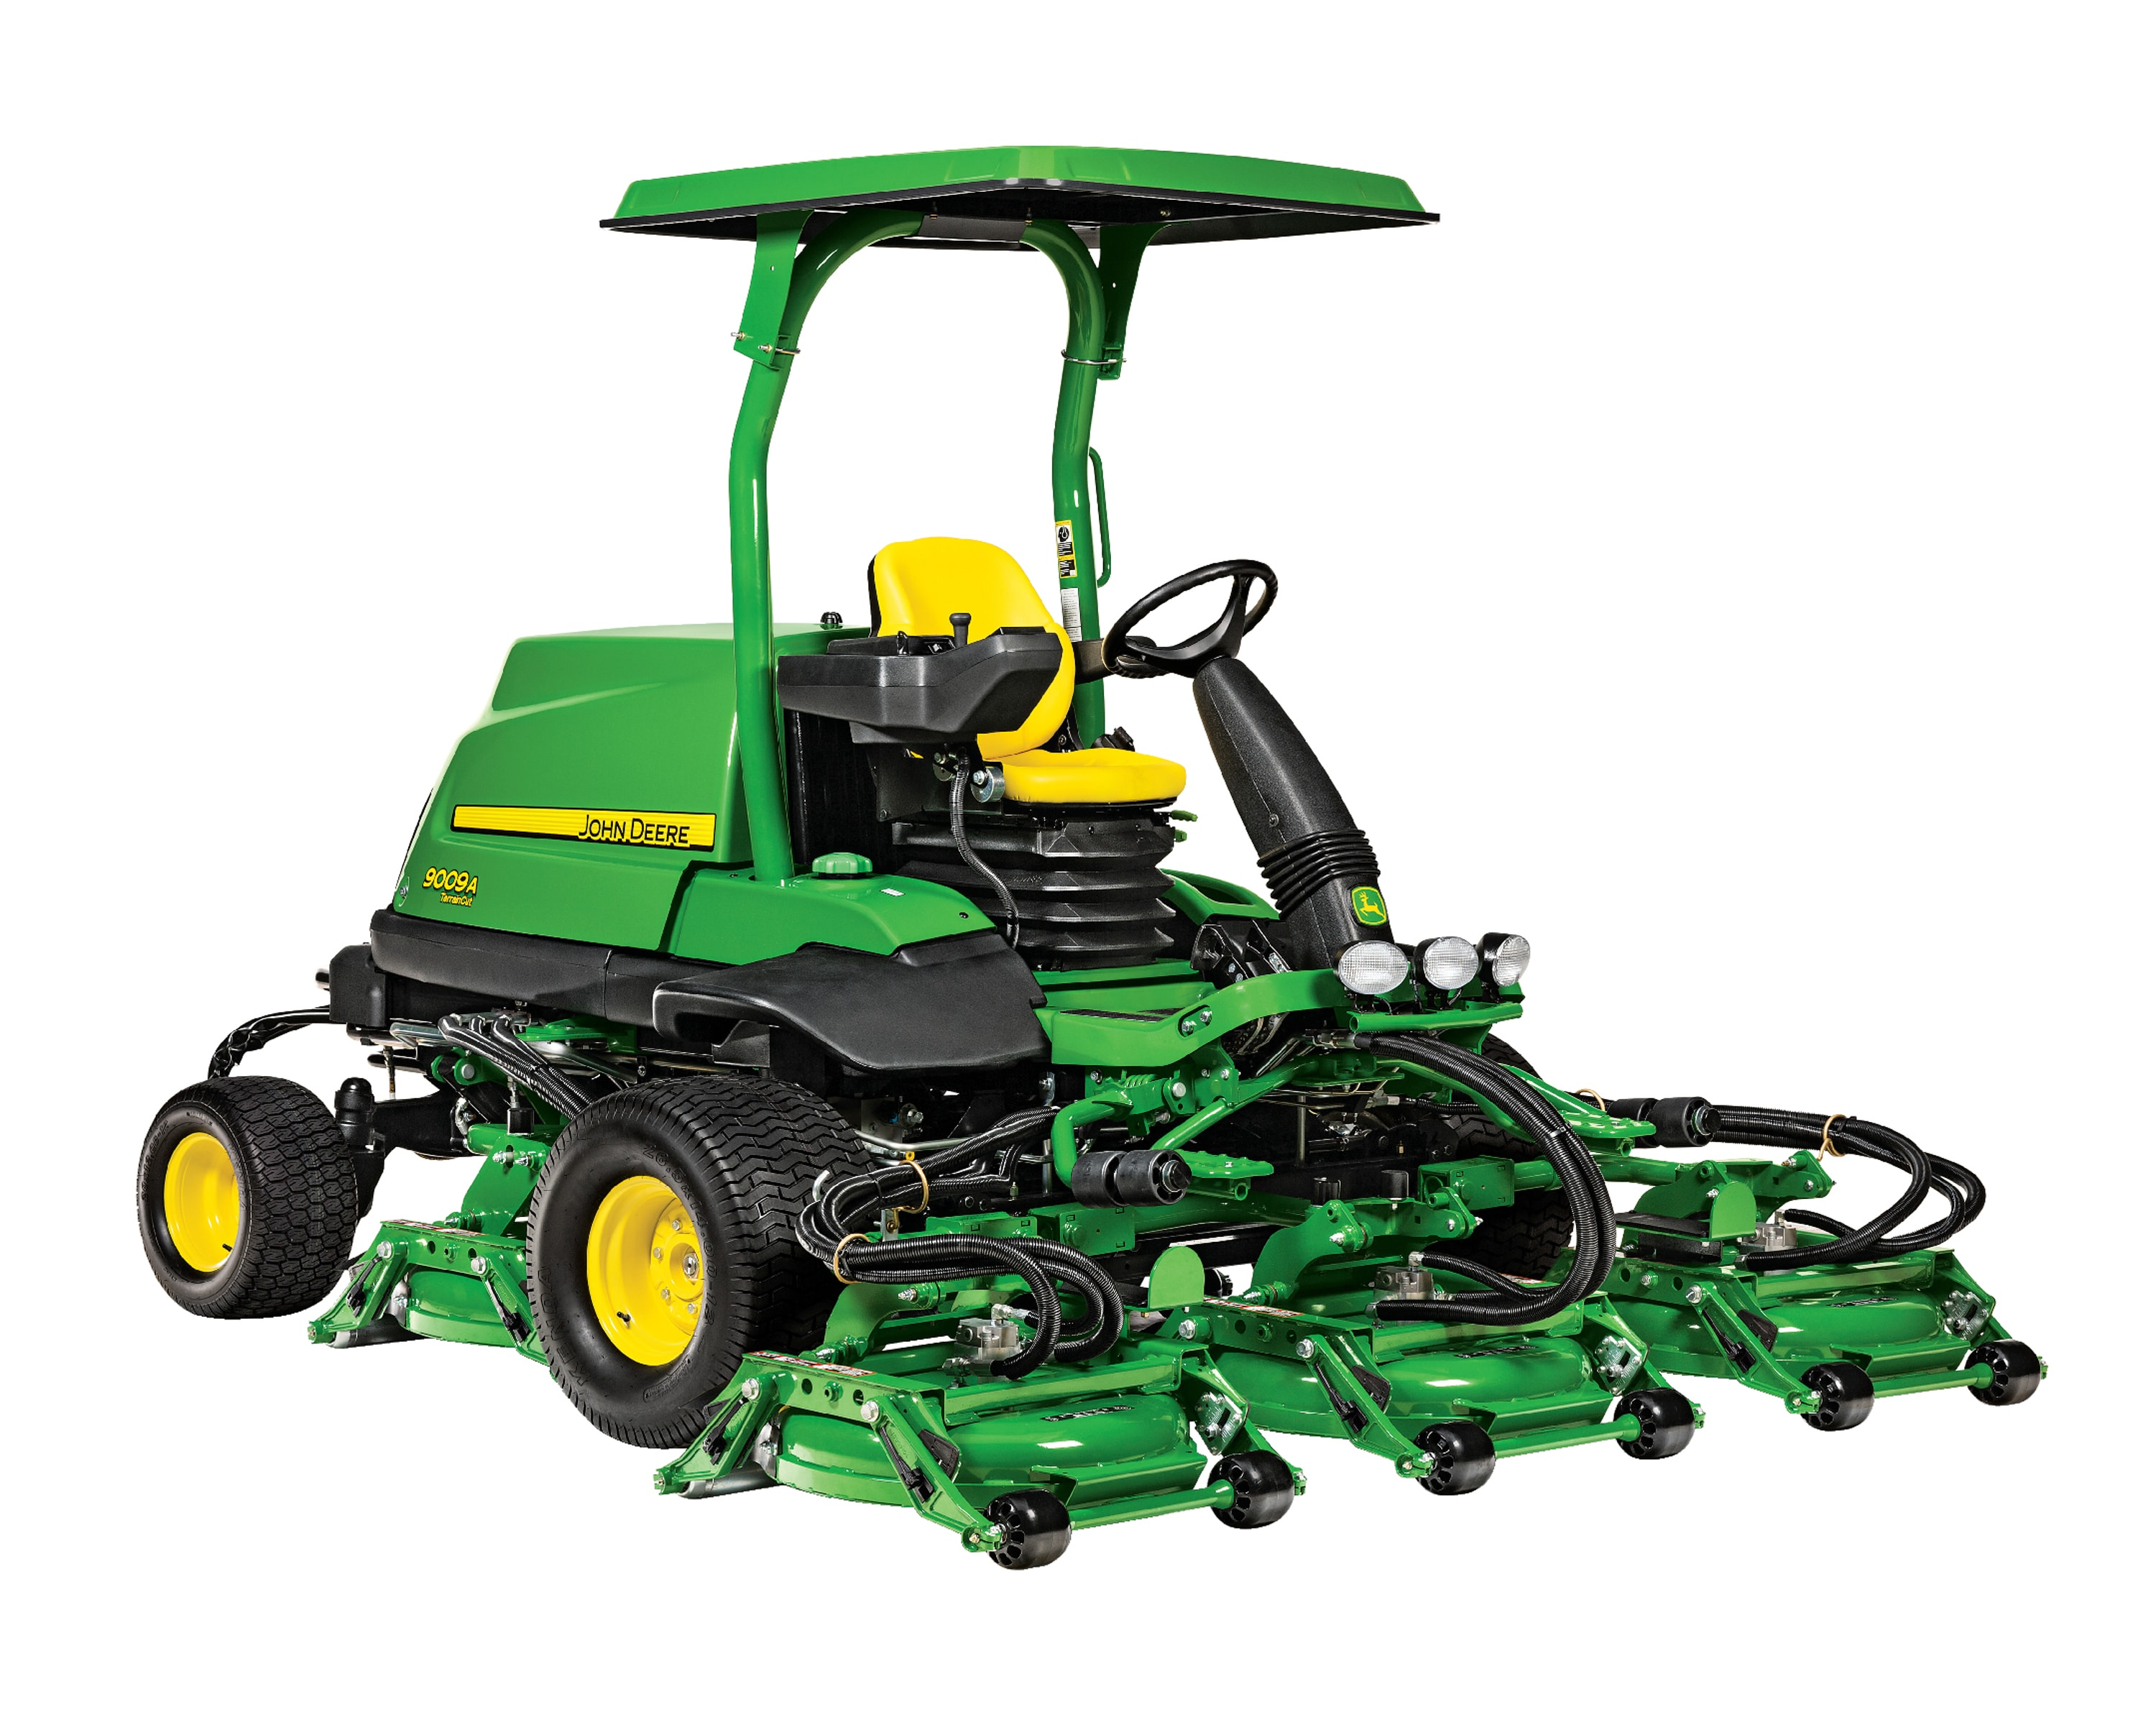 Studio sideview image of a John Deere 3025E compact utility tractor